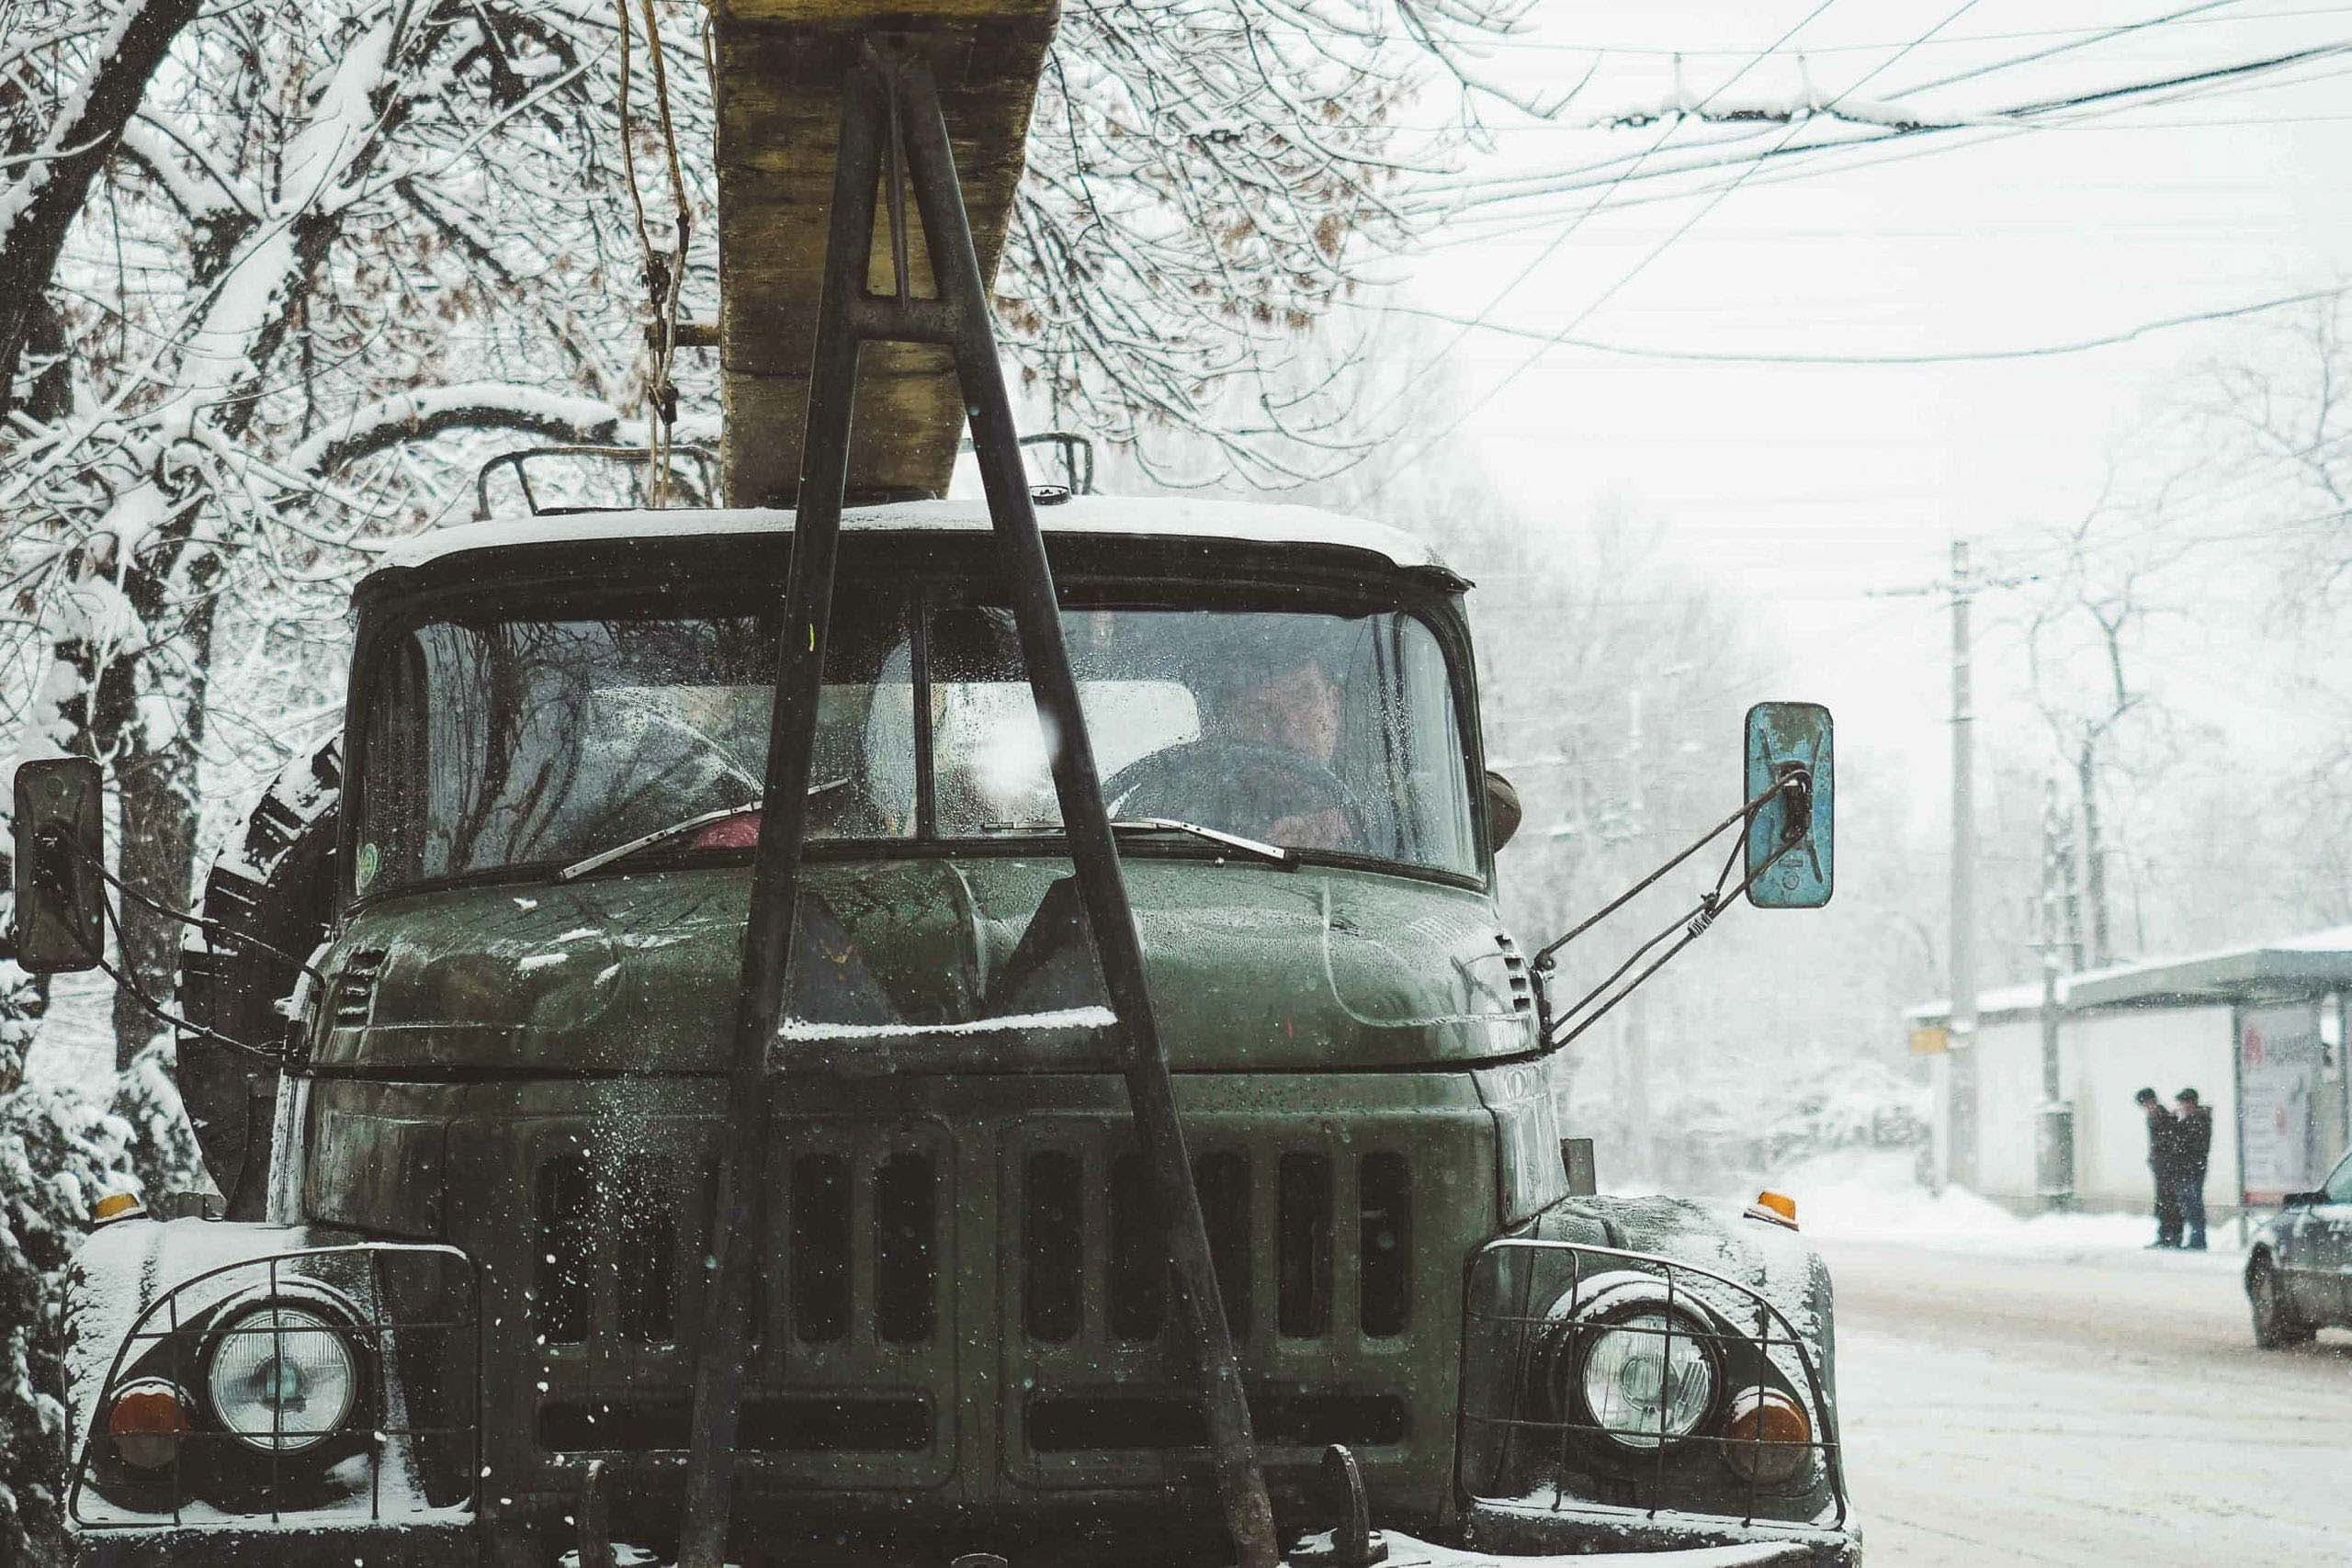 Green truck in the winter